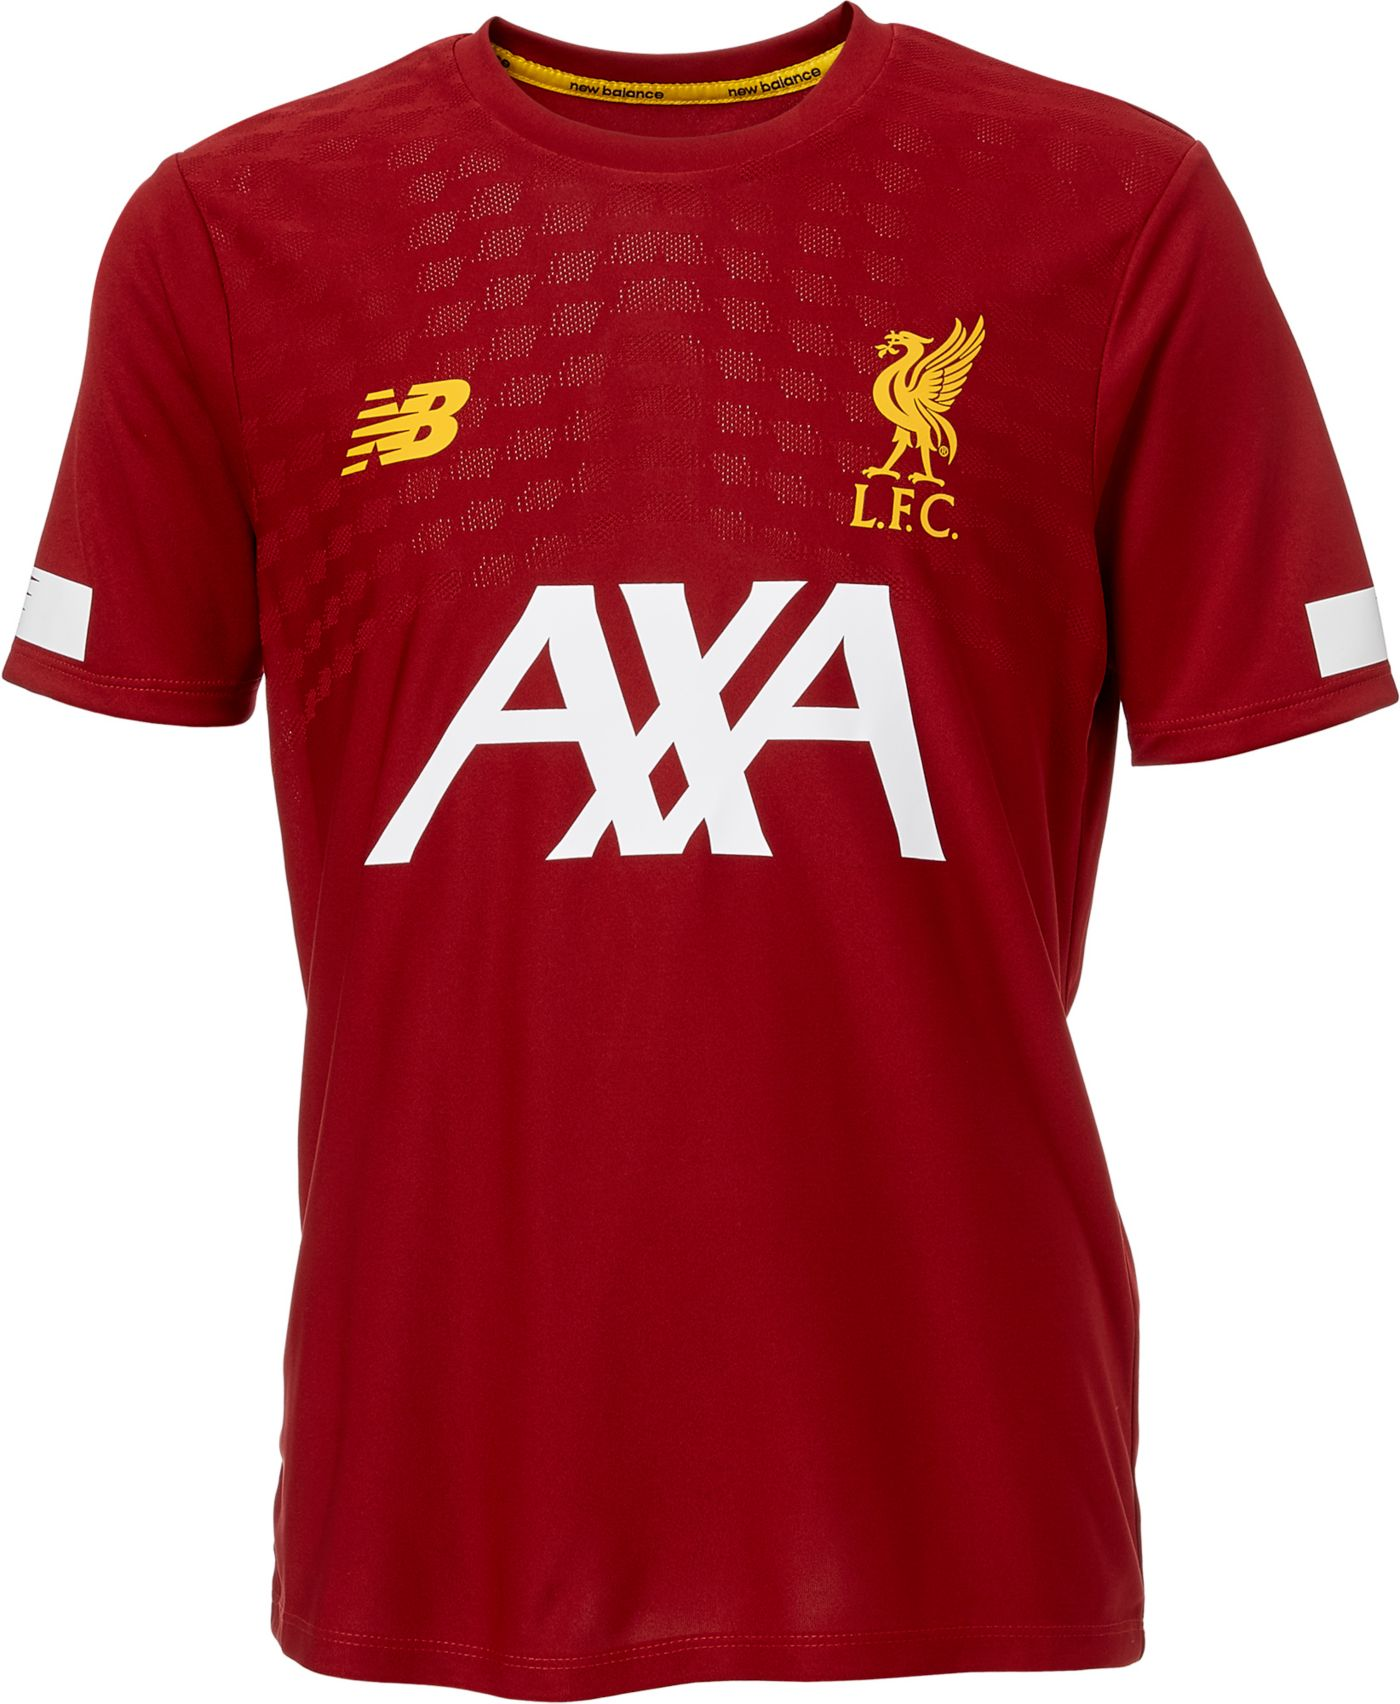 New Balance Youth Liverpool Prematch Red Shirt